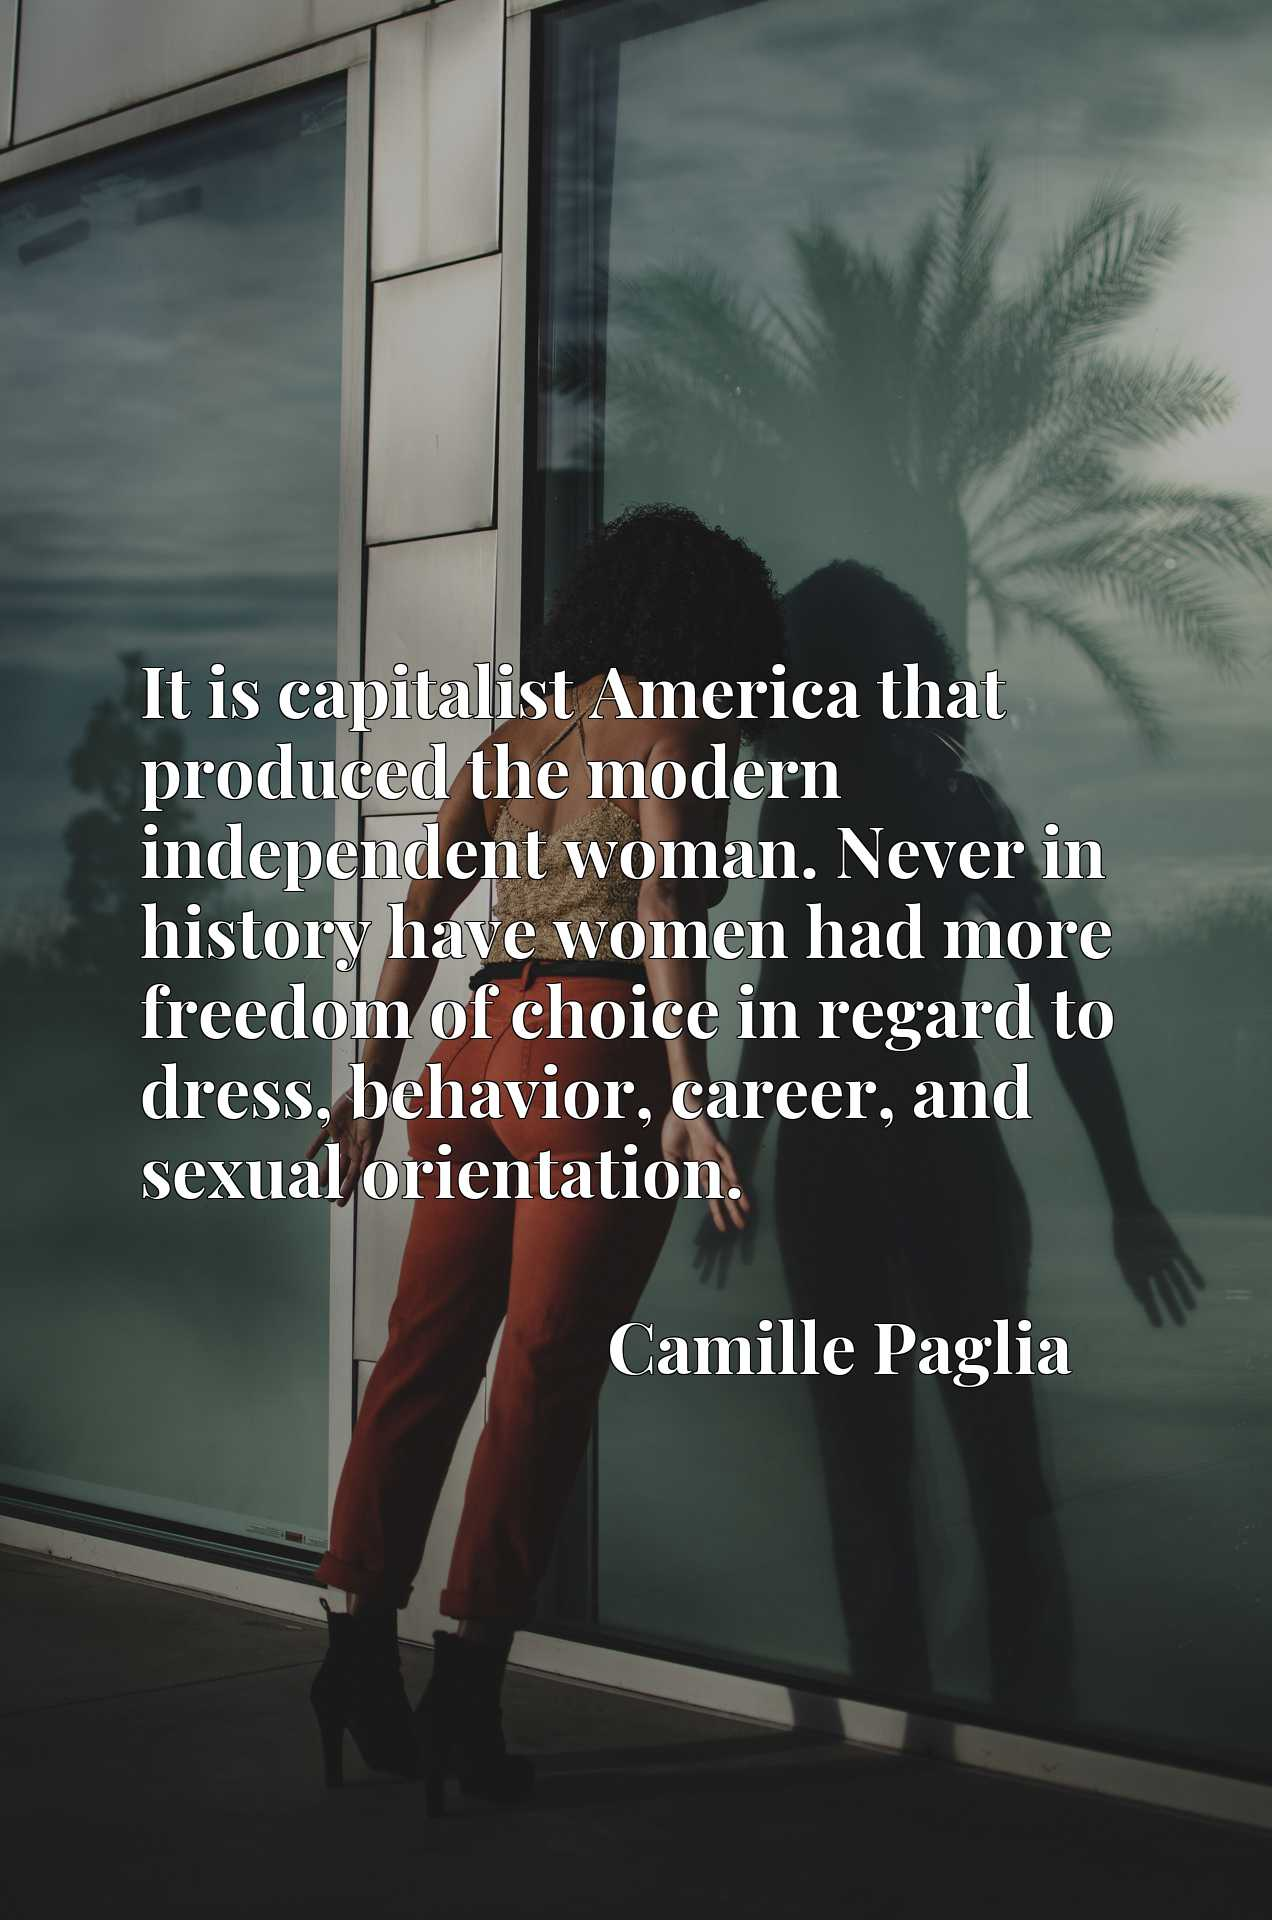 It is capitalist America that produced the modern independent woman. Never in history have women had more freedom of choice in regard to dress, behavior, career, and sexual orientation.